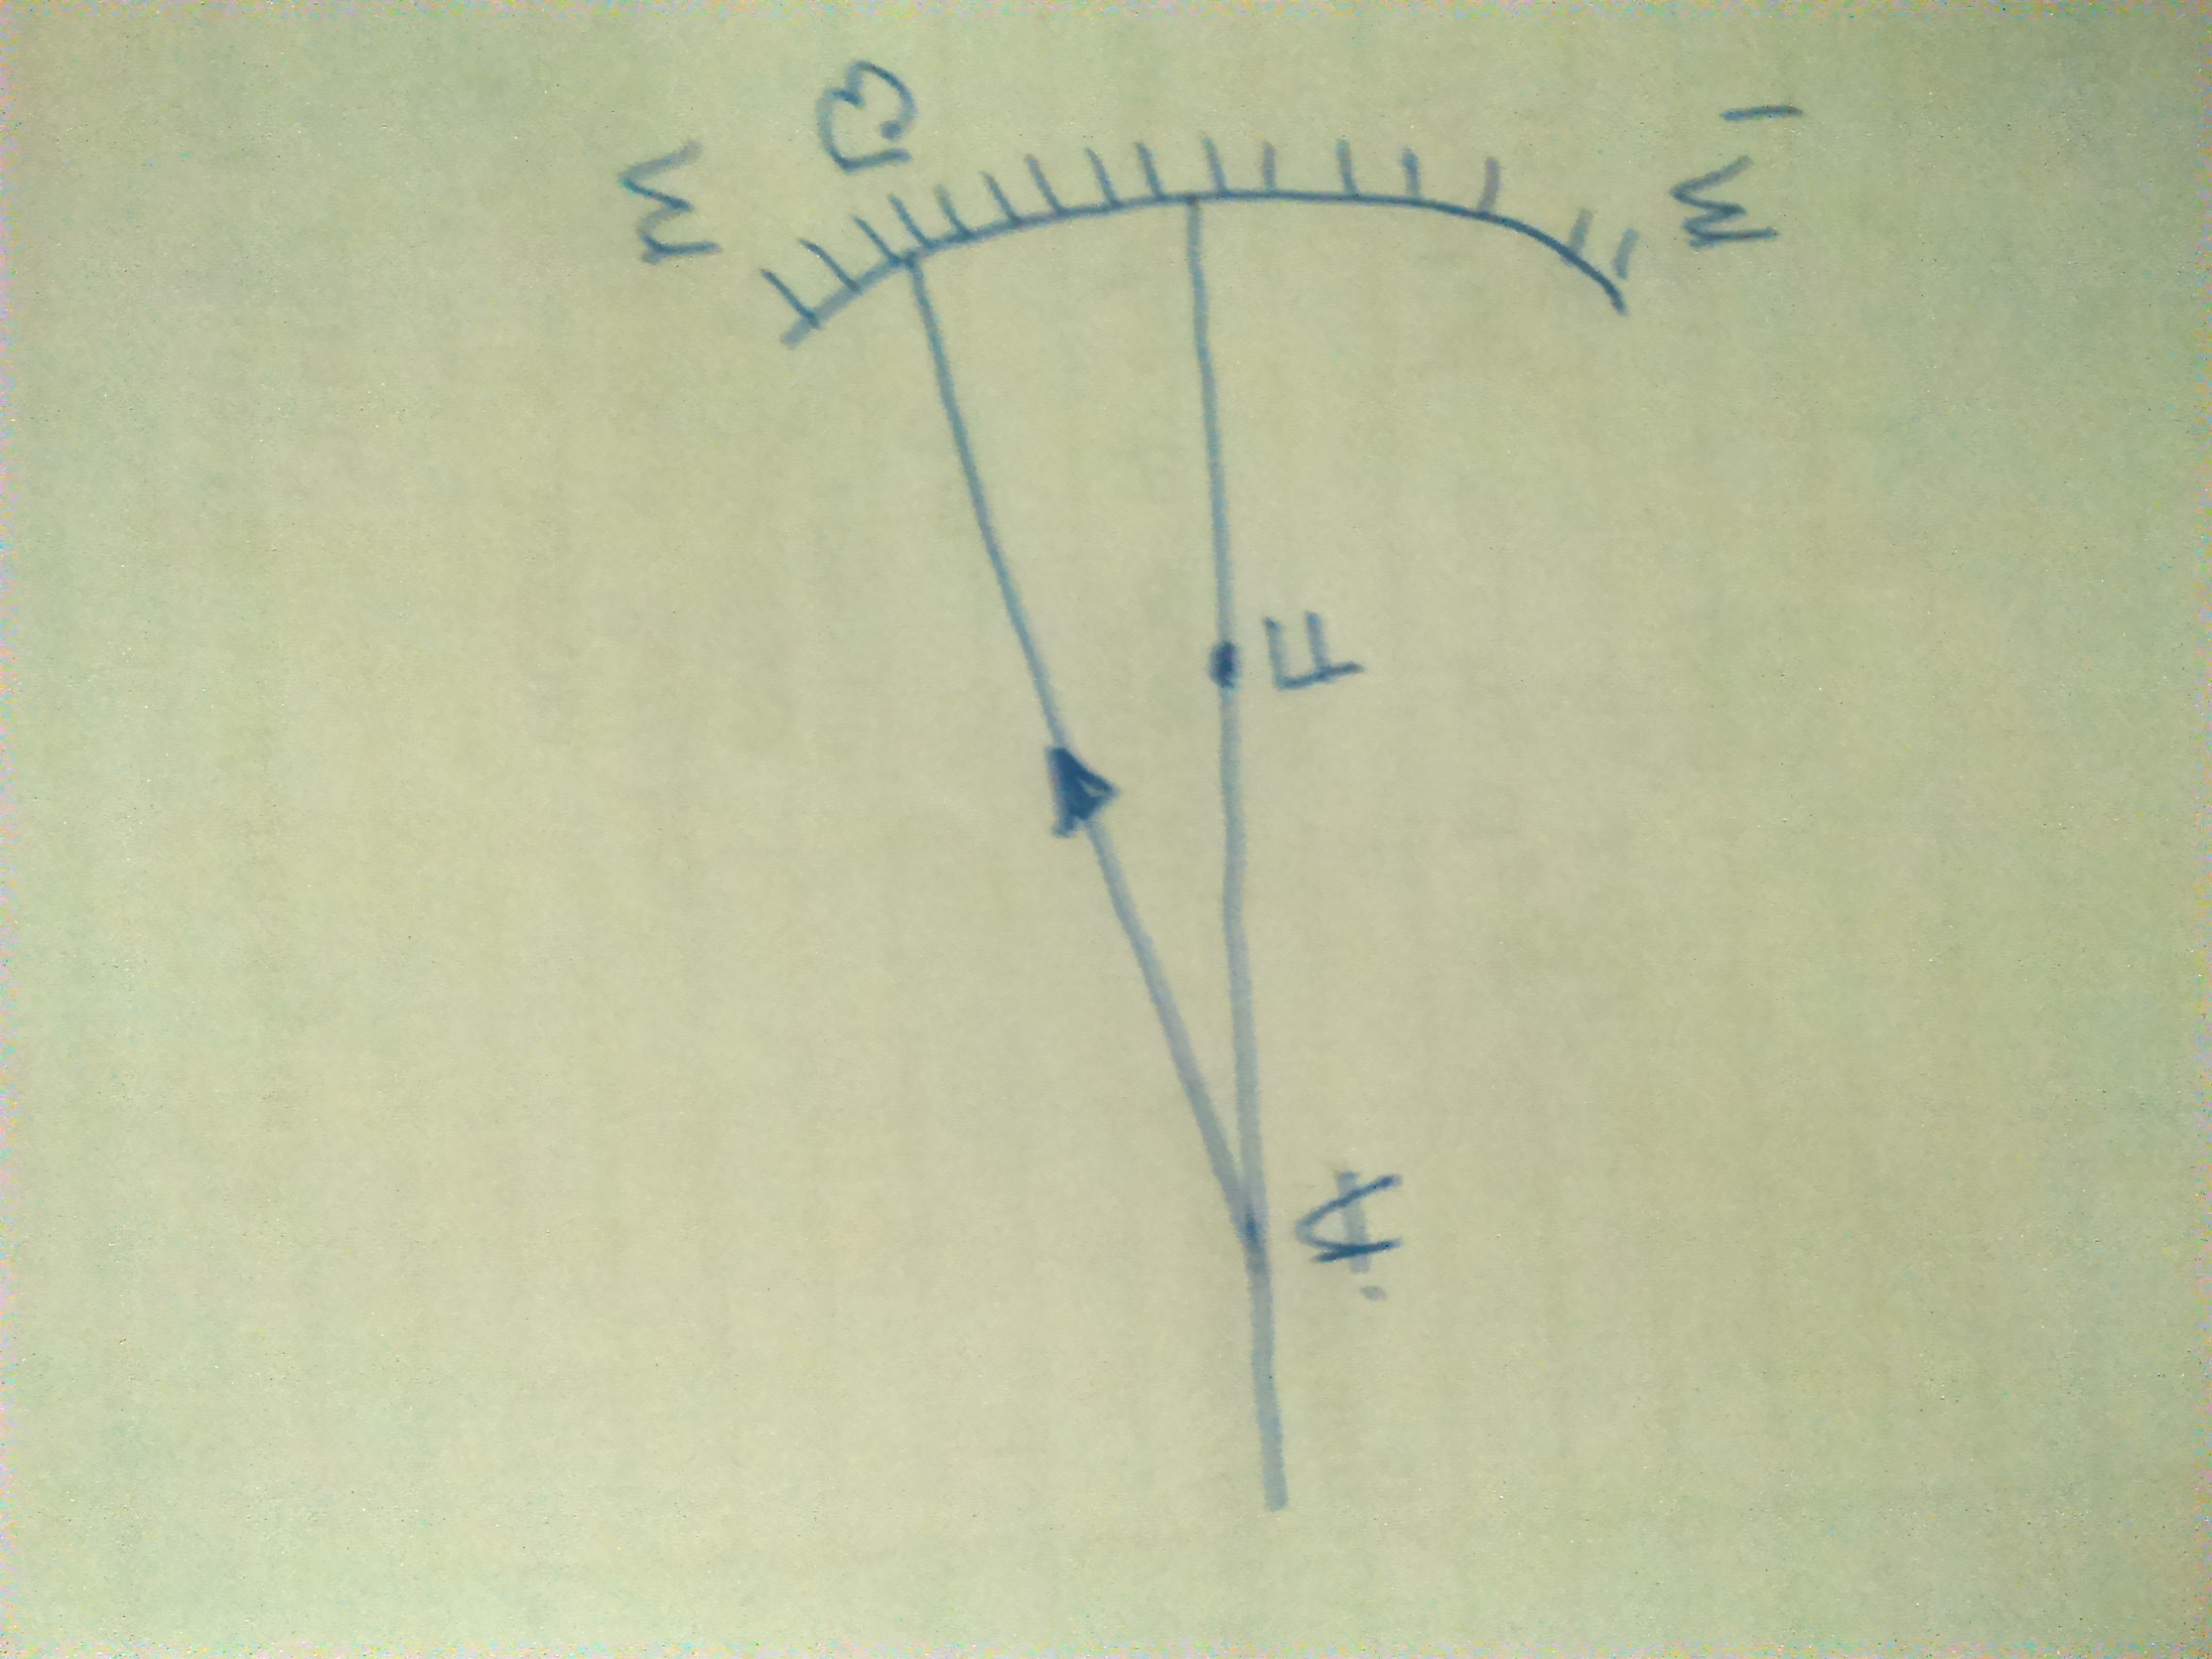 Concave Mirror Diagram The Diagram Below In The Figure Shows A Concave Mirror Mm1 With Its